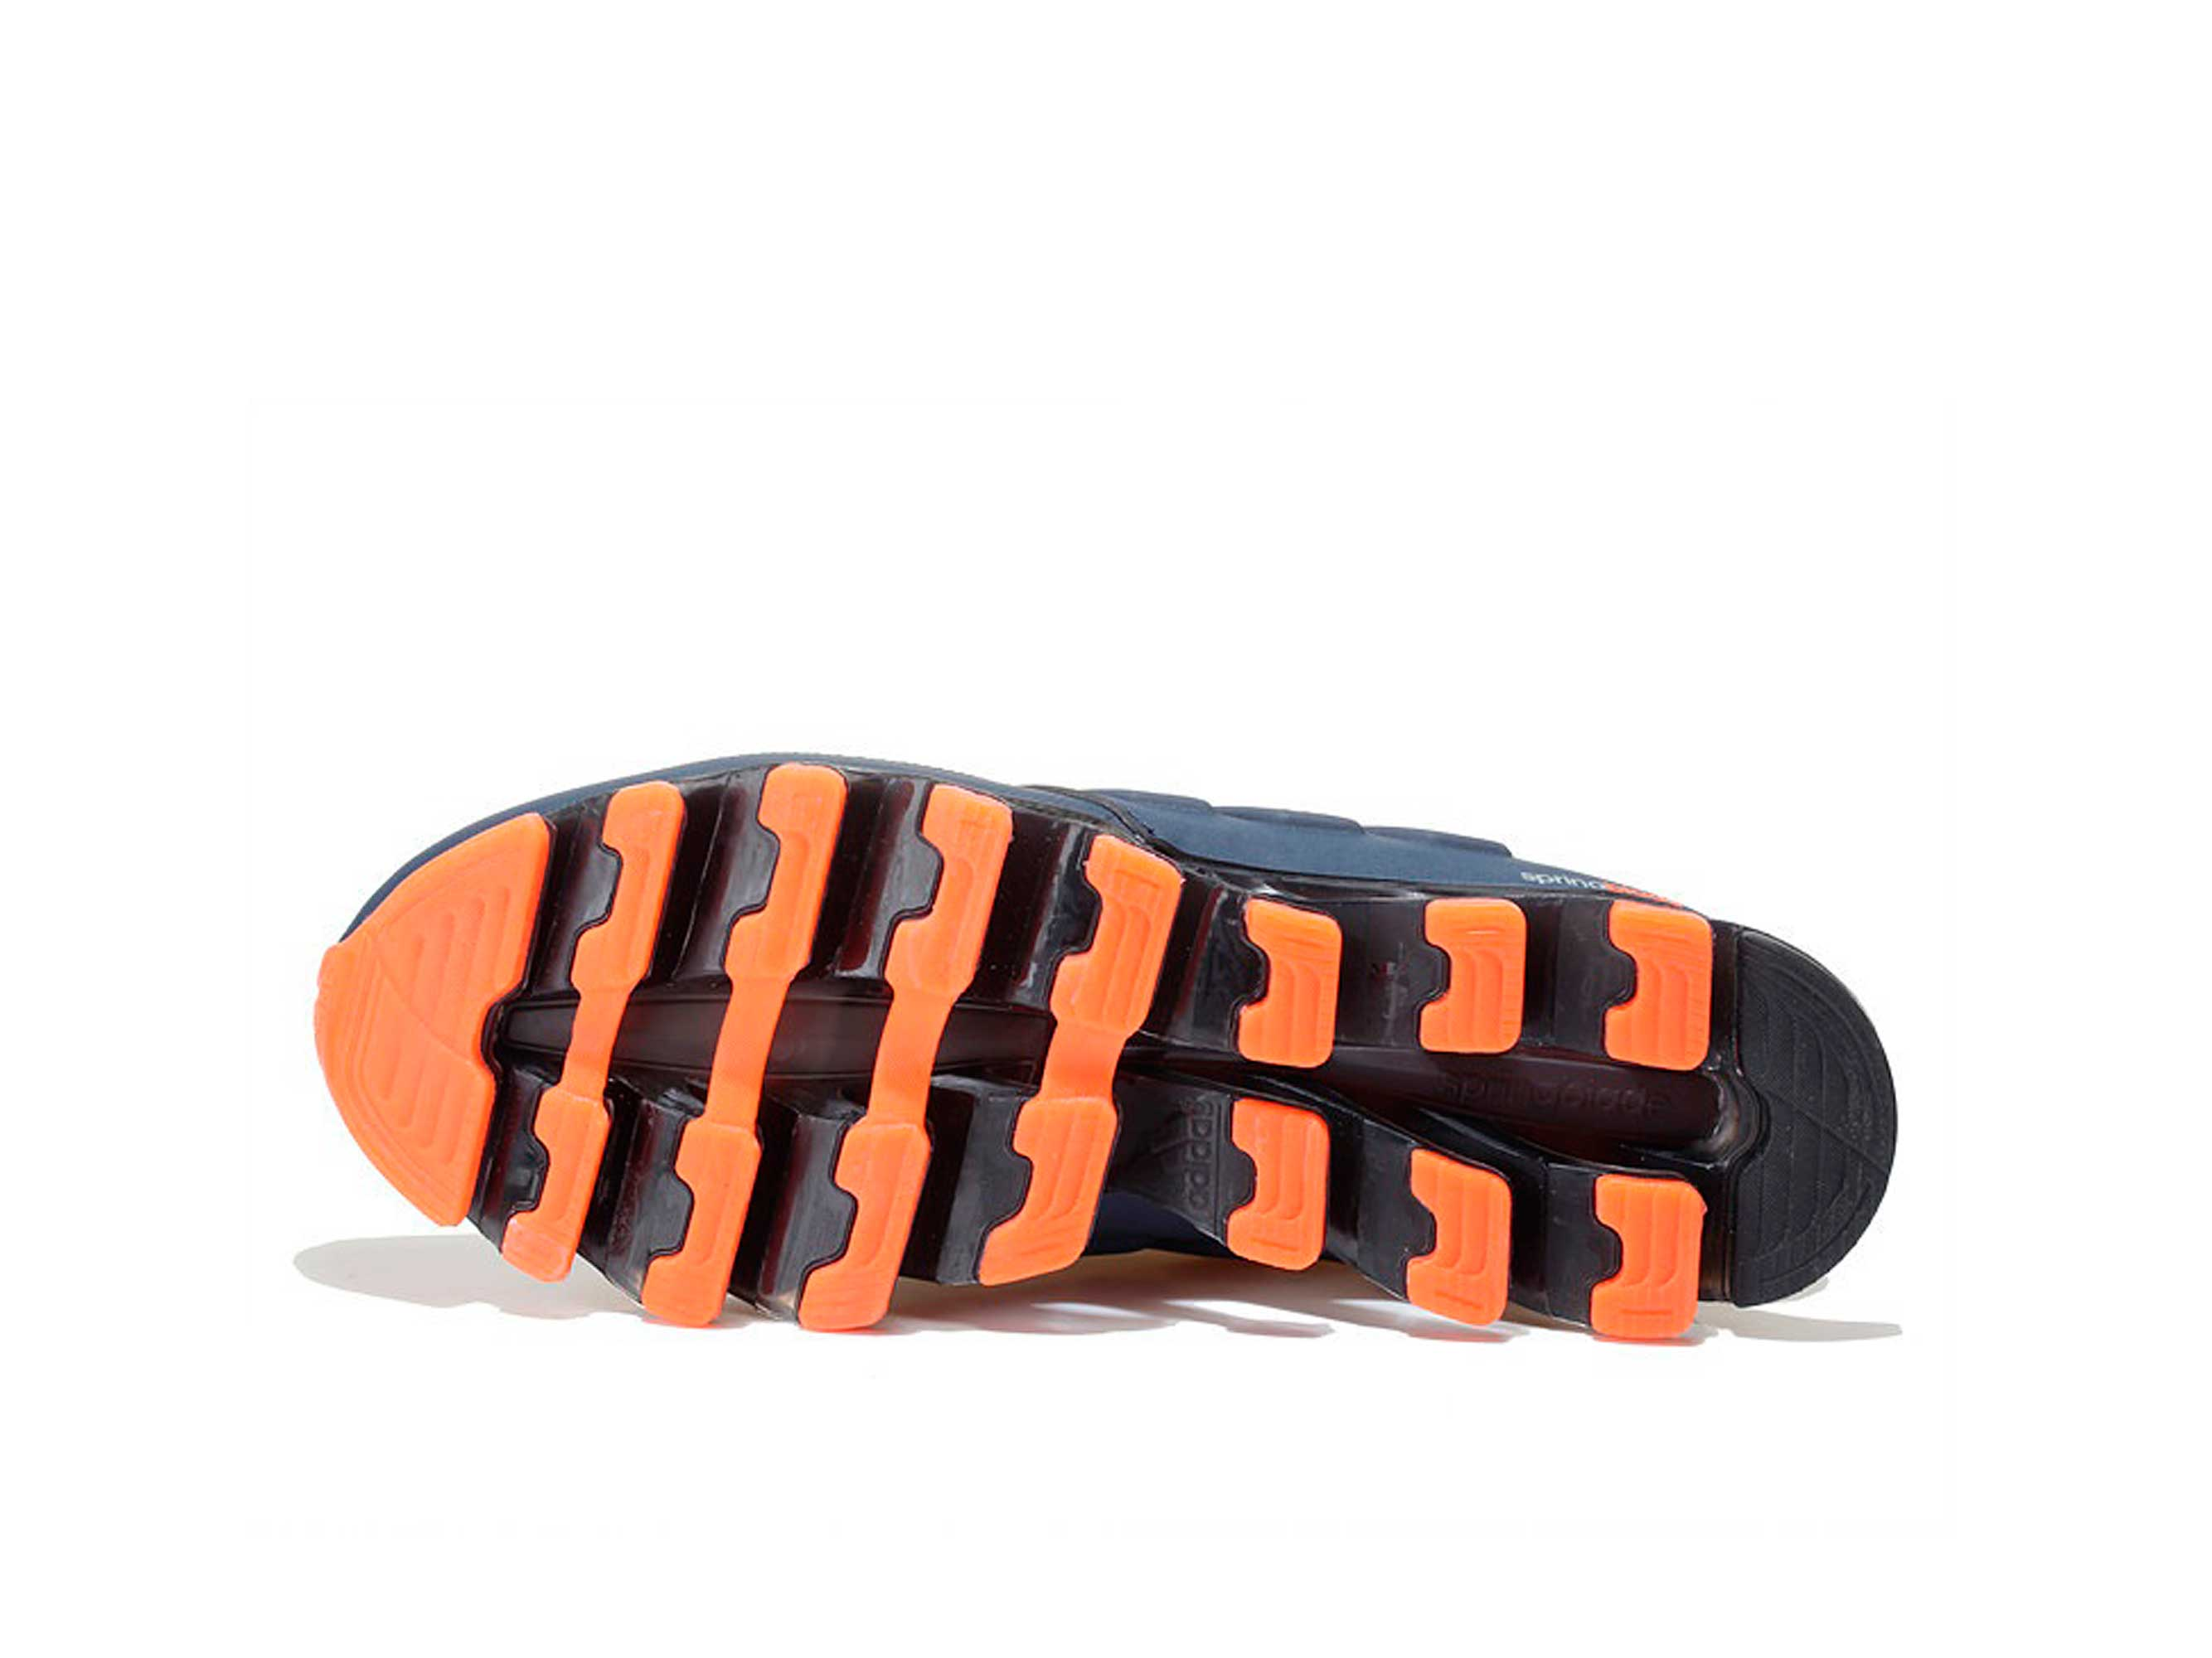 buy online b74d7 f7906 ... promo code for adidas springblade drive 2.0 navy orange 3eeb2 1d5a3